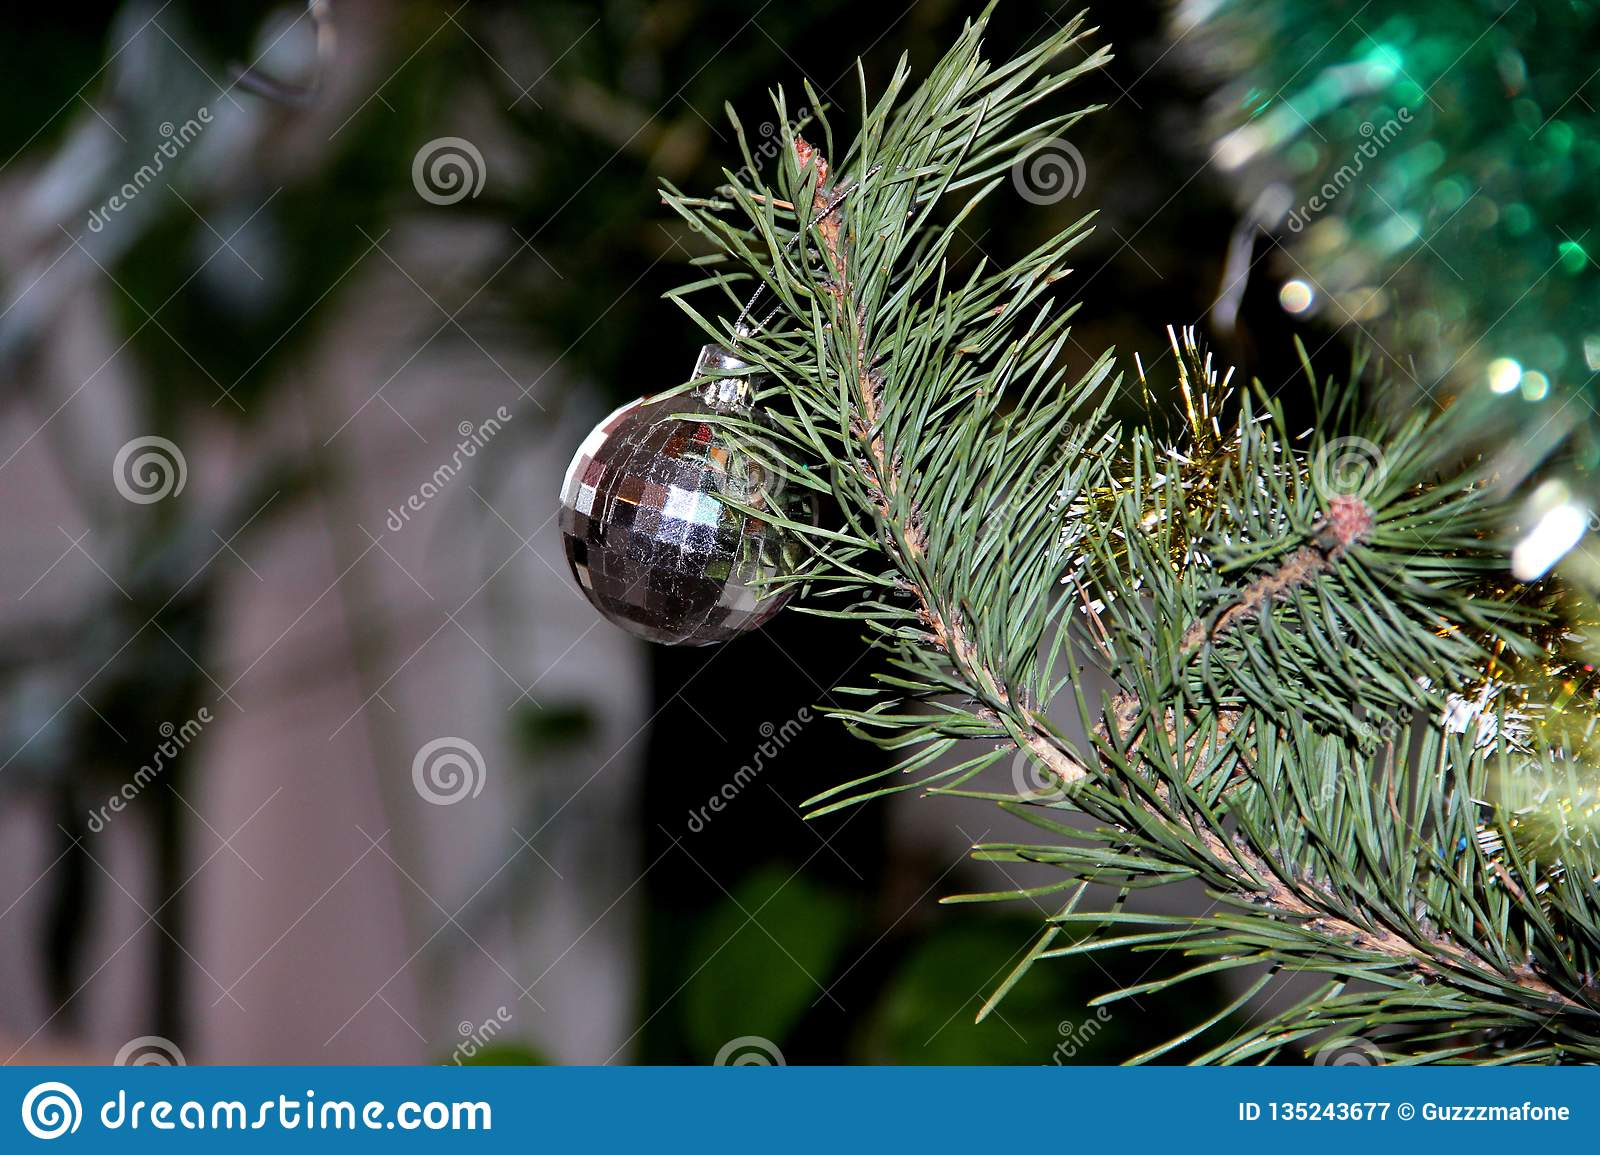 Christmas Tree Spruce Or Other Conifers Custom Made For The New Year Originally Originated As A And Took Over Most Of